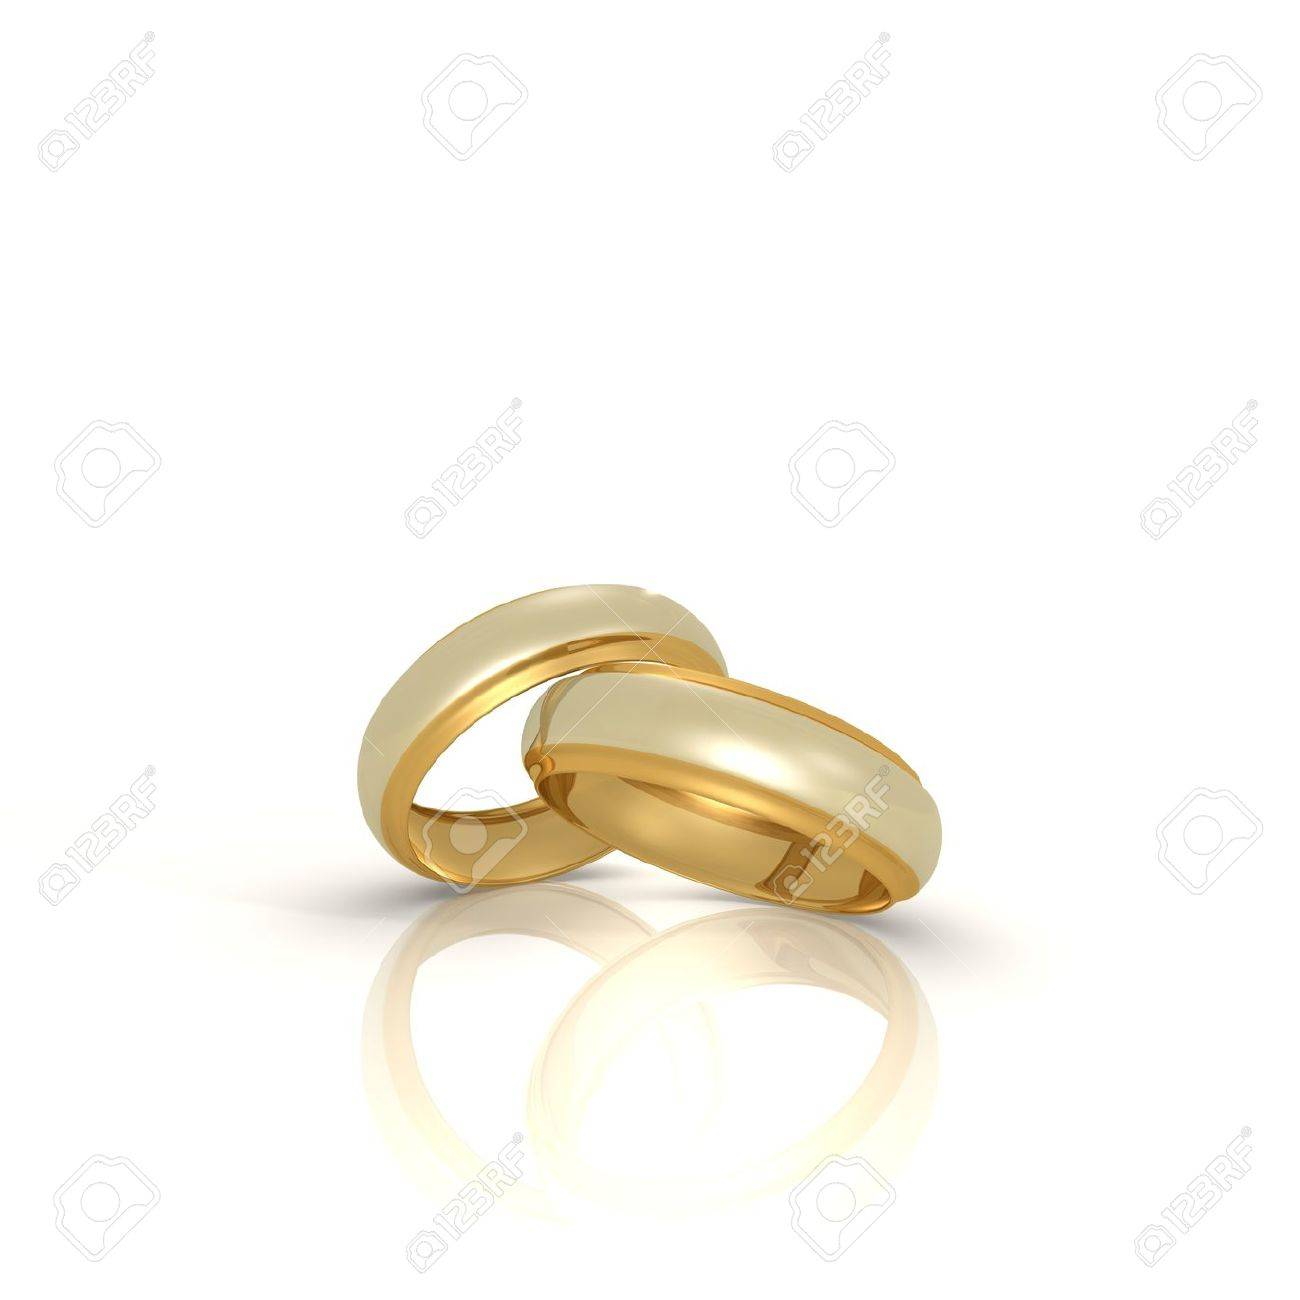 a pair of gold and silver wedding rings a 3d image stock photo 8813283 - Gold And Silver Wedding Rings